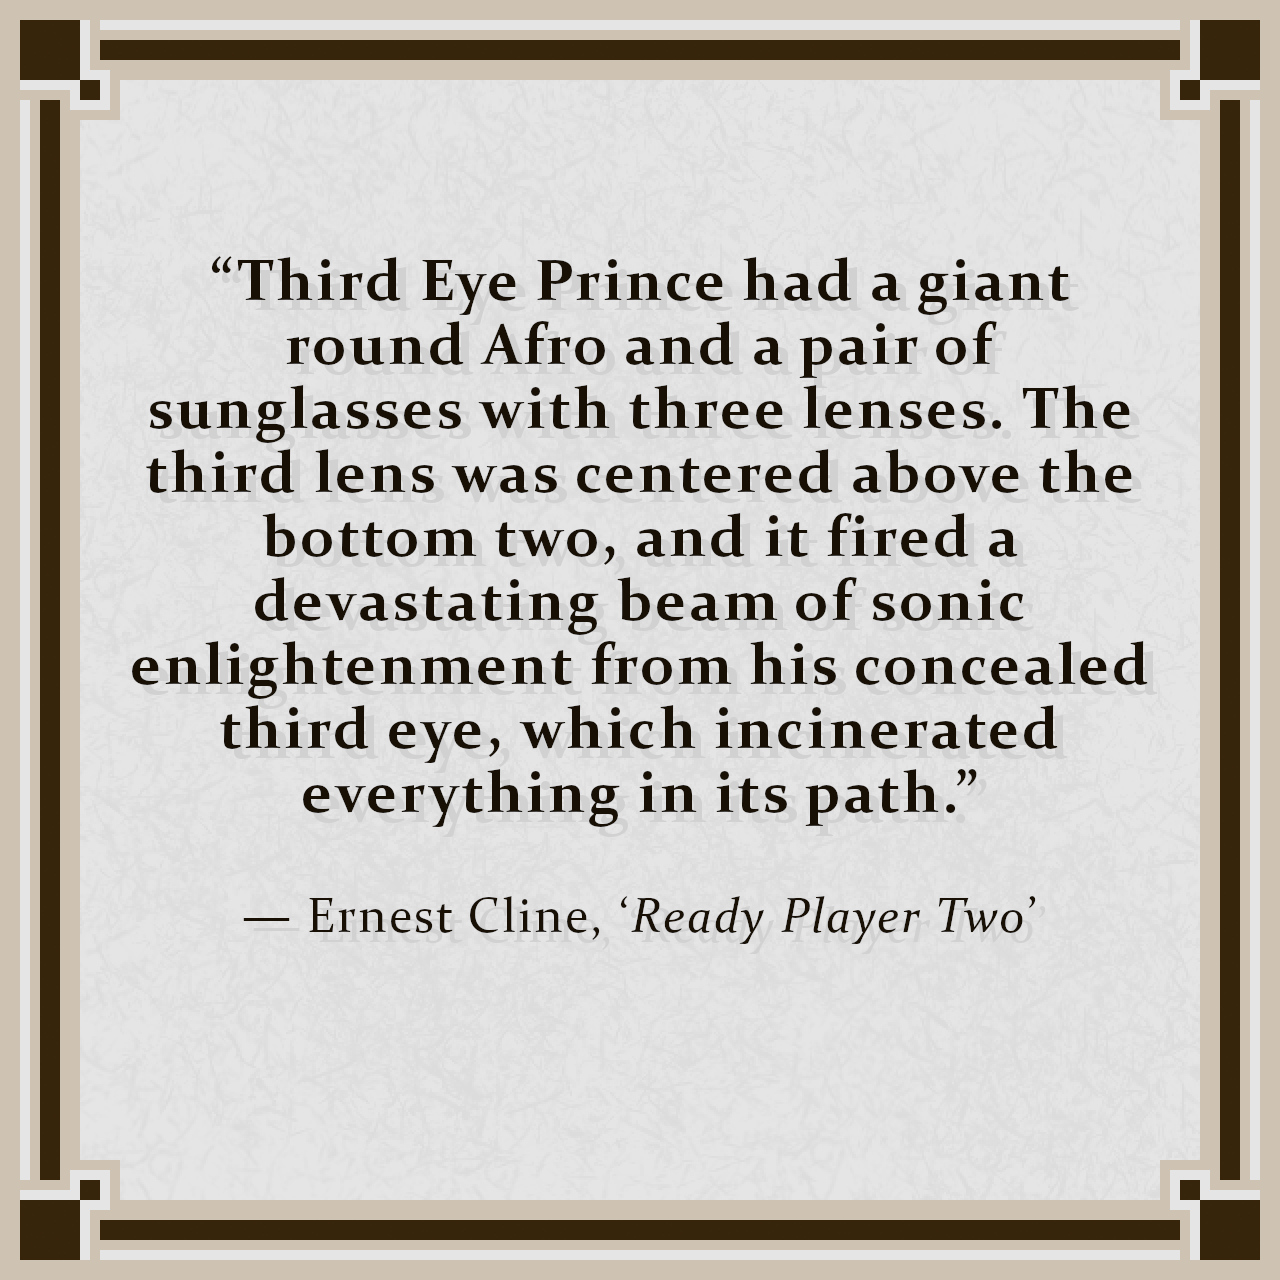 """""""Third Eye Prince had a giant round Afro and a pair of sunglasses with three lenses. The third lens was centered above the bottom two, and it fired a devastating beam of sonic enlightenment from his concealed third eye, which incinerated everything in its path."""" — Ernest Cline, 'Ready Player Two'"""